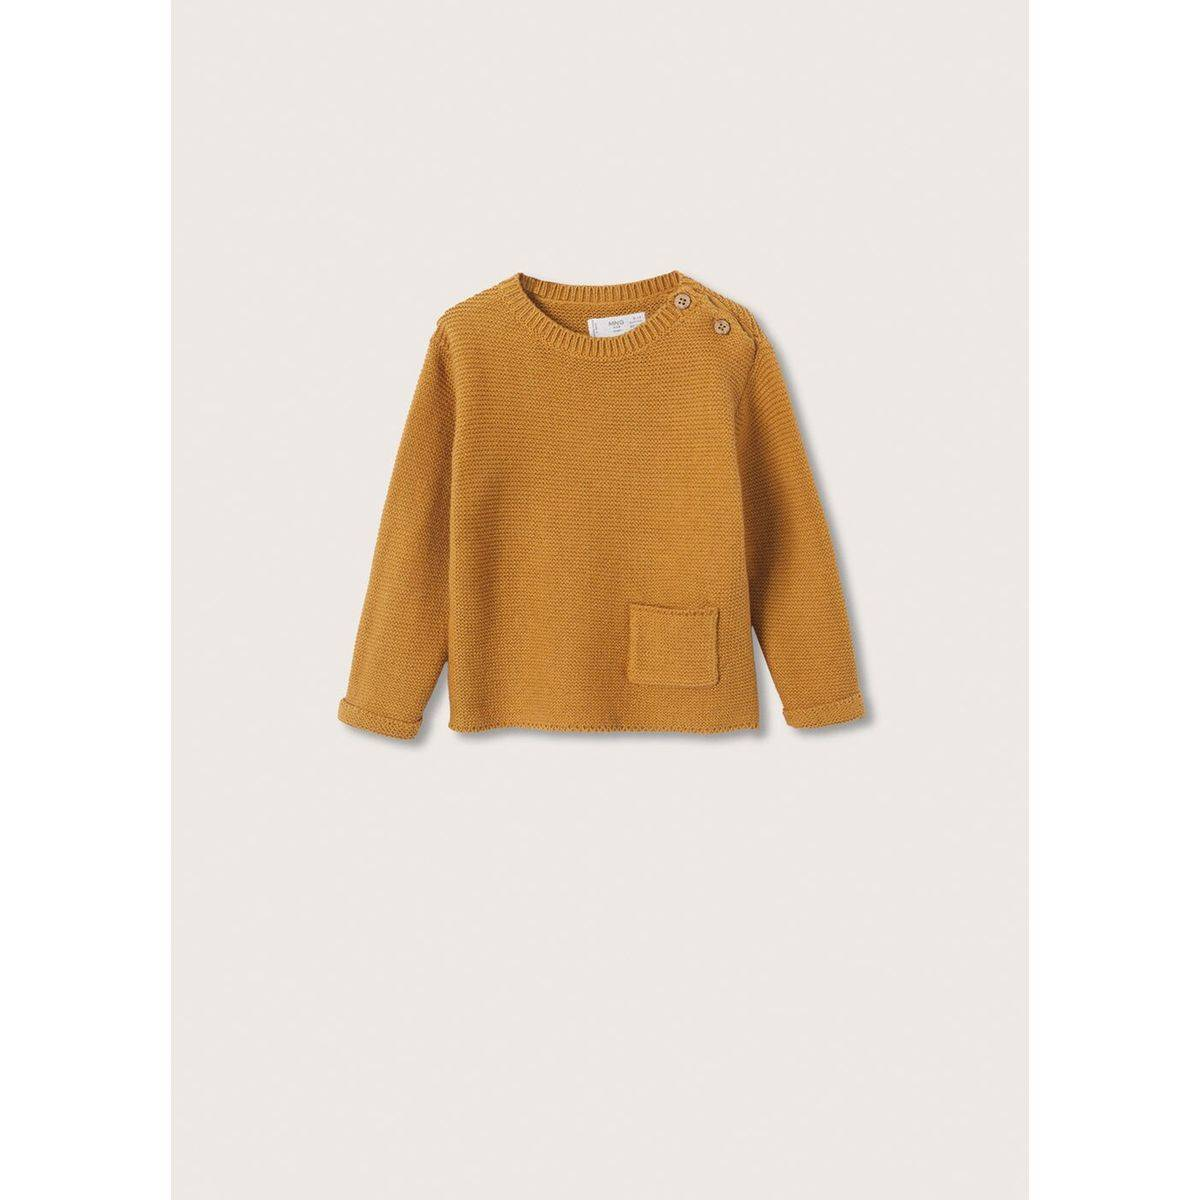 Pull-over maille poche